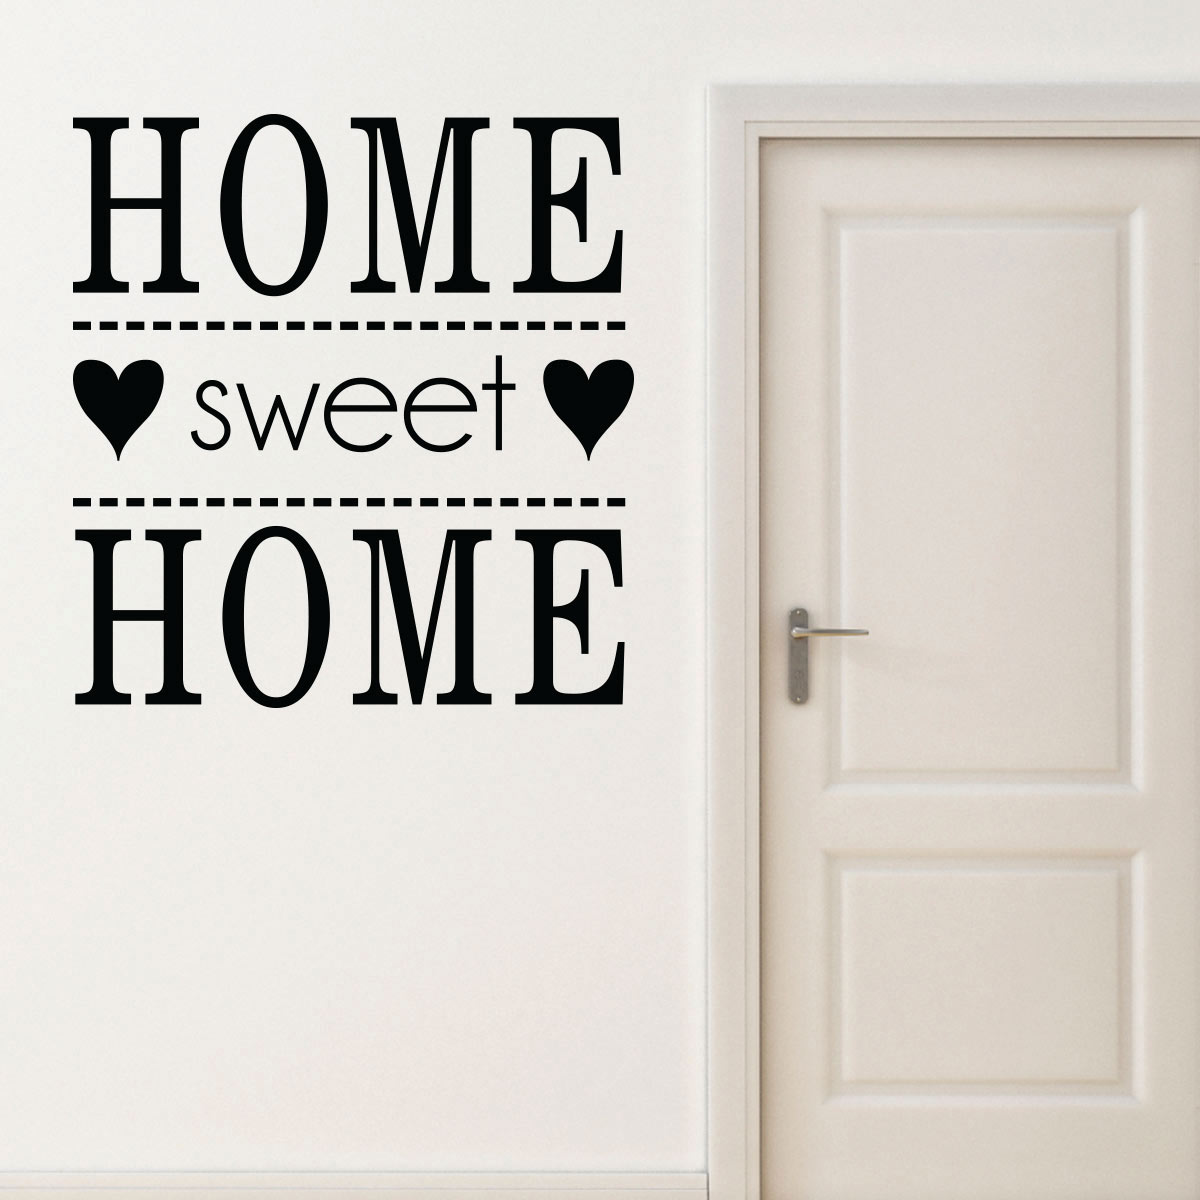 Faszinierend Wandtattoo Home Sweet Home Sammlung Von Sticker-citation-home-sweet-home-amoureux-1-ambiance-sticker-jus-cit- Homesweet.jpg